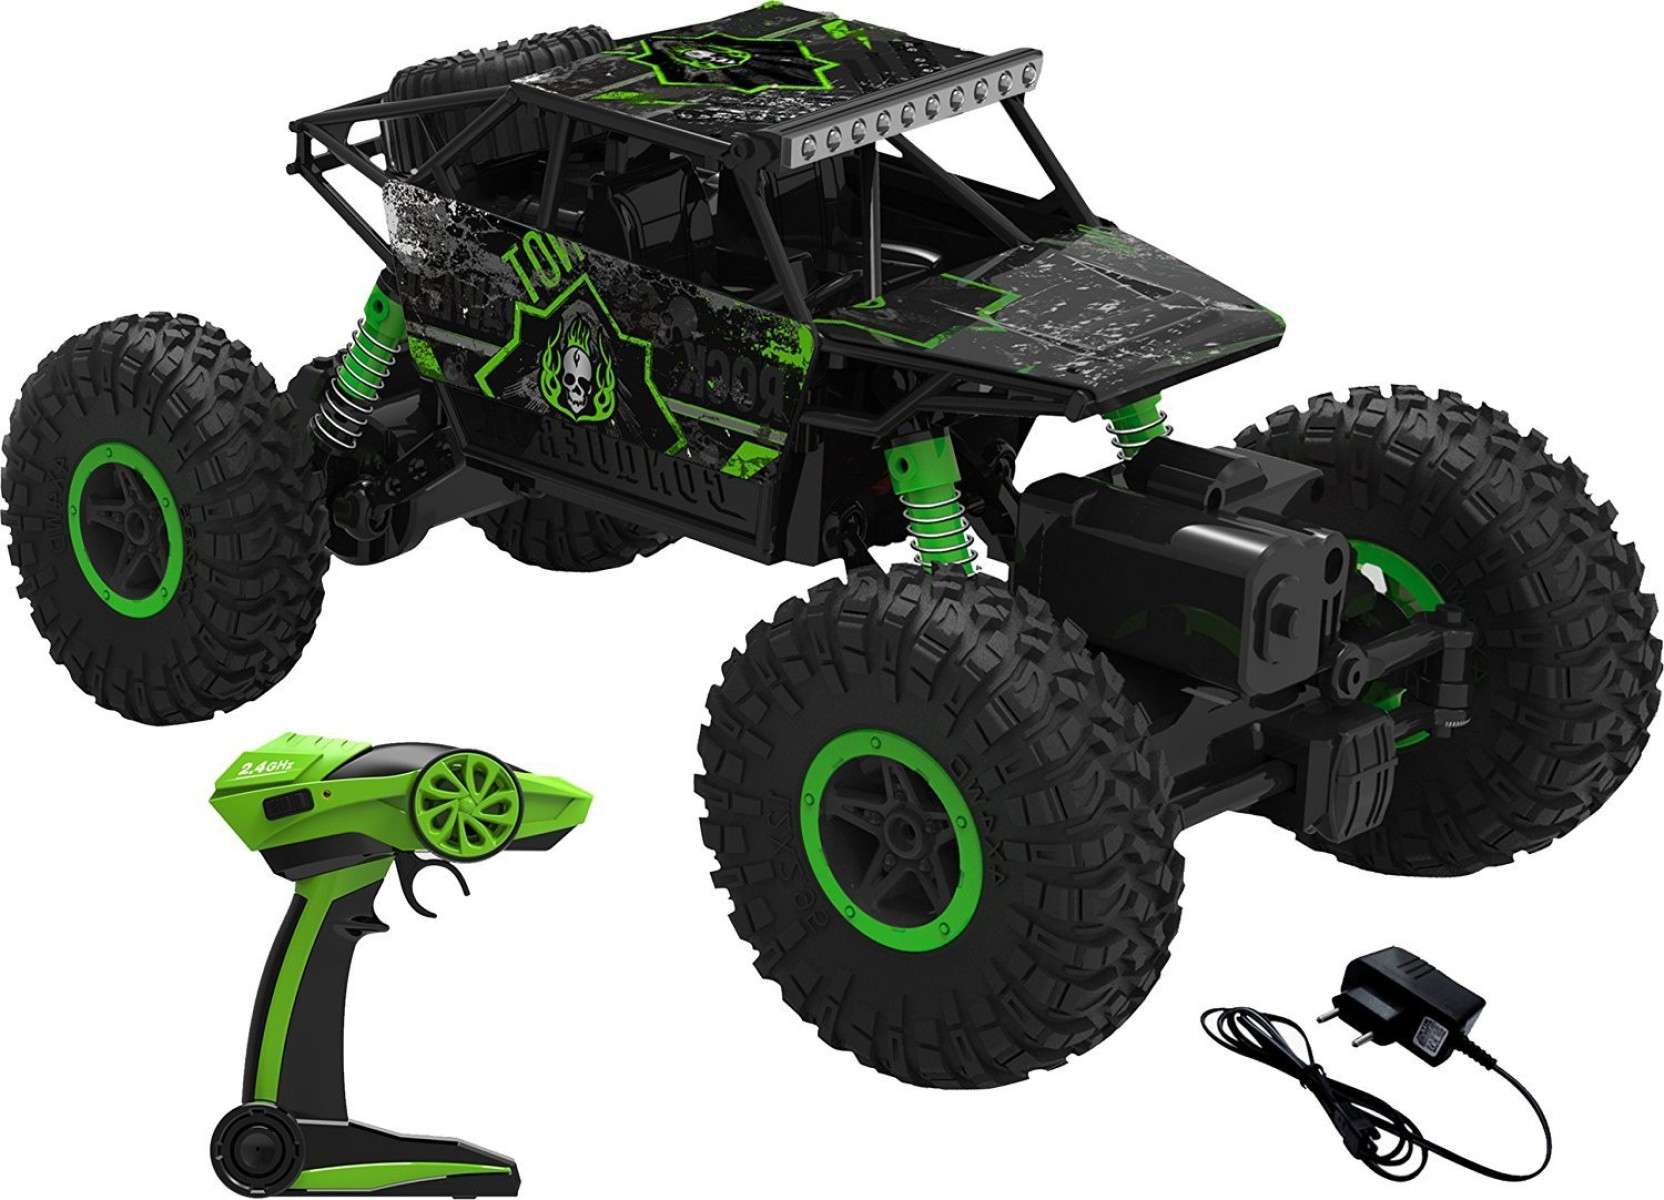 Green Monster Truck Toy : Saffire ghz remote controlled rock crawler rc monster